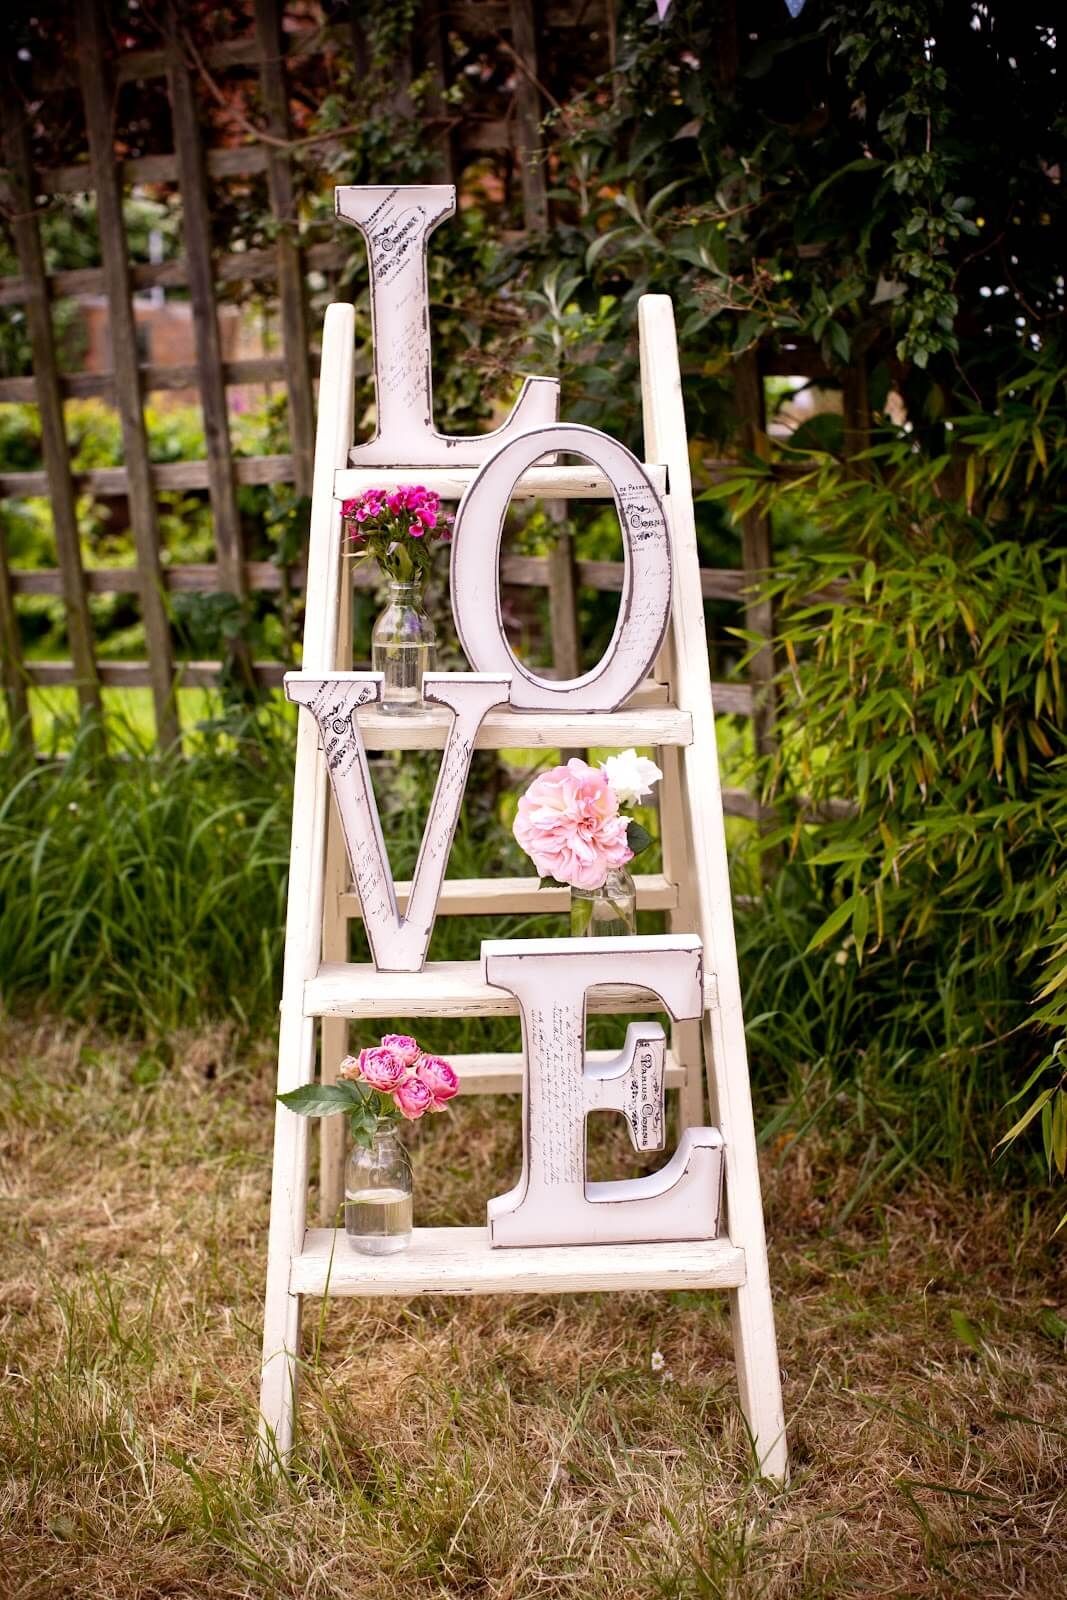 Love Ladder and Vase Garden Display